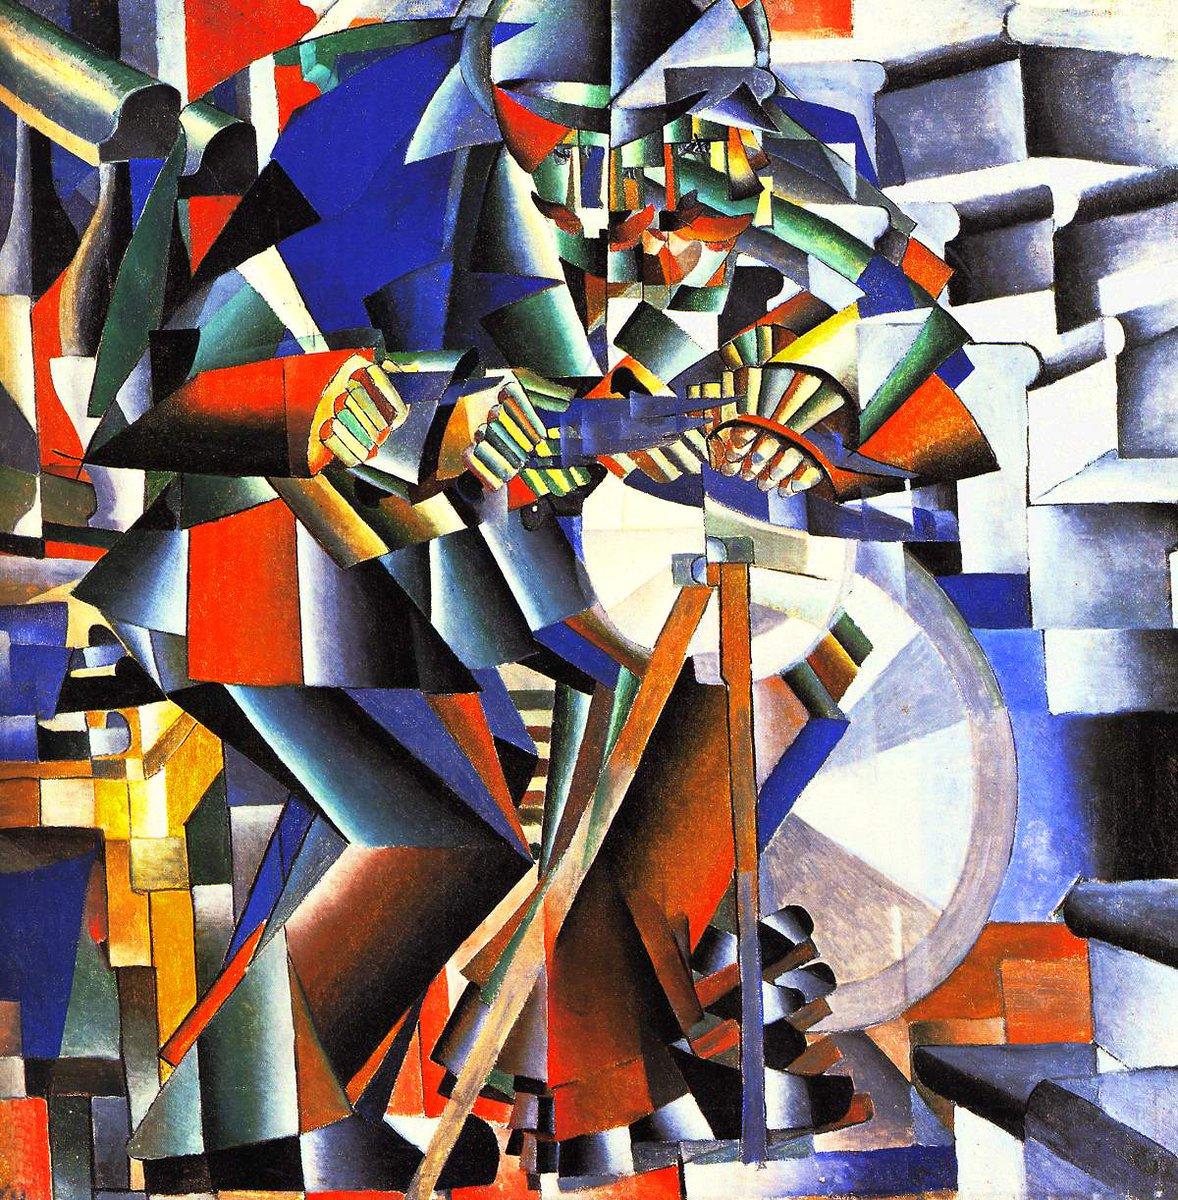 The Knife Grinder (1912) by Kazimir Malevich Style: Cubo-Futurism  #art #painting #KazimirMalevich #CuboFuturism https://t.co/Xz980i9TOZ